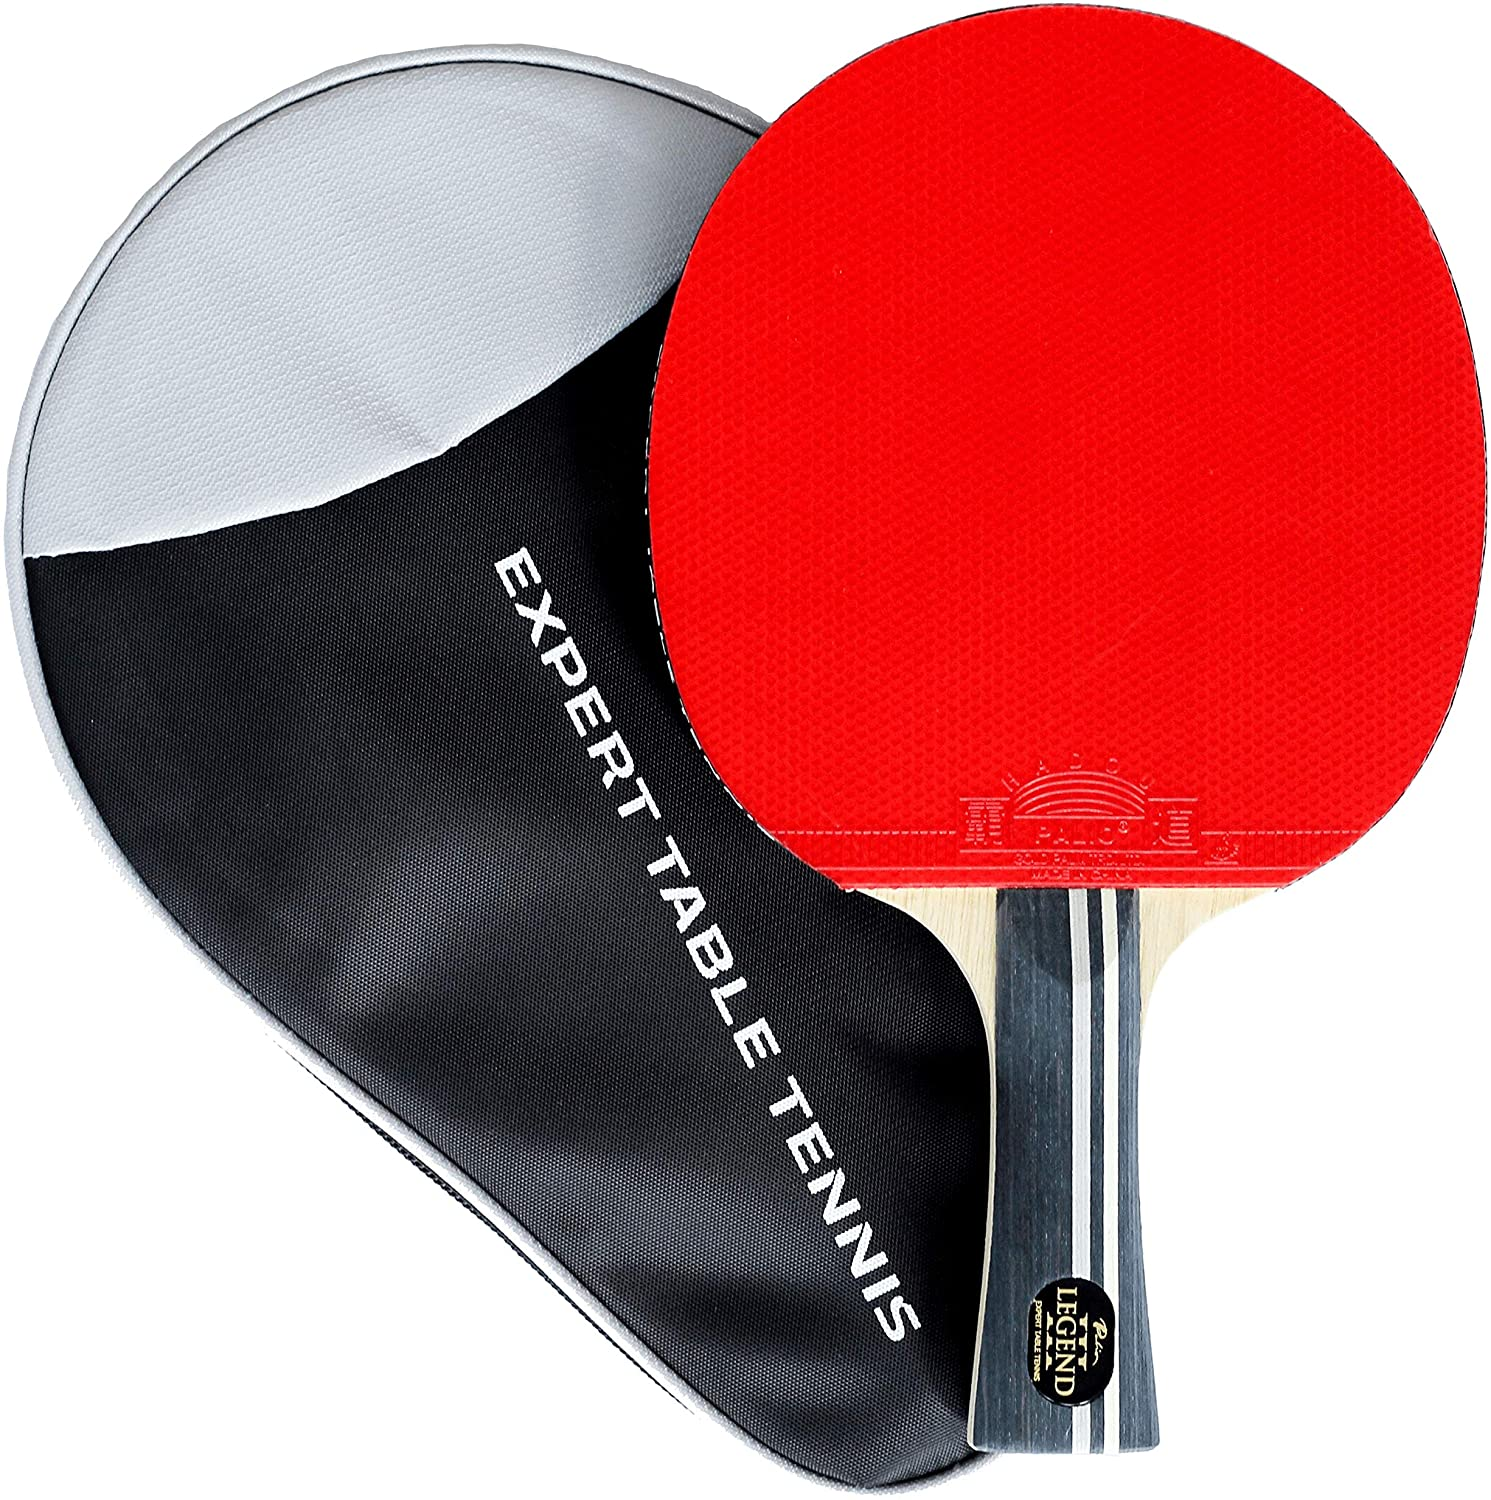 Palio Legend 3.0 Table Tennis Industry No. 1 Racket Case Approved Adva ITTF famous -